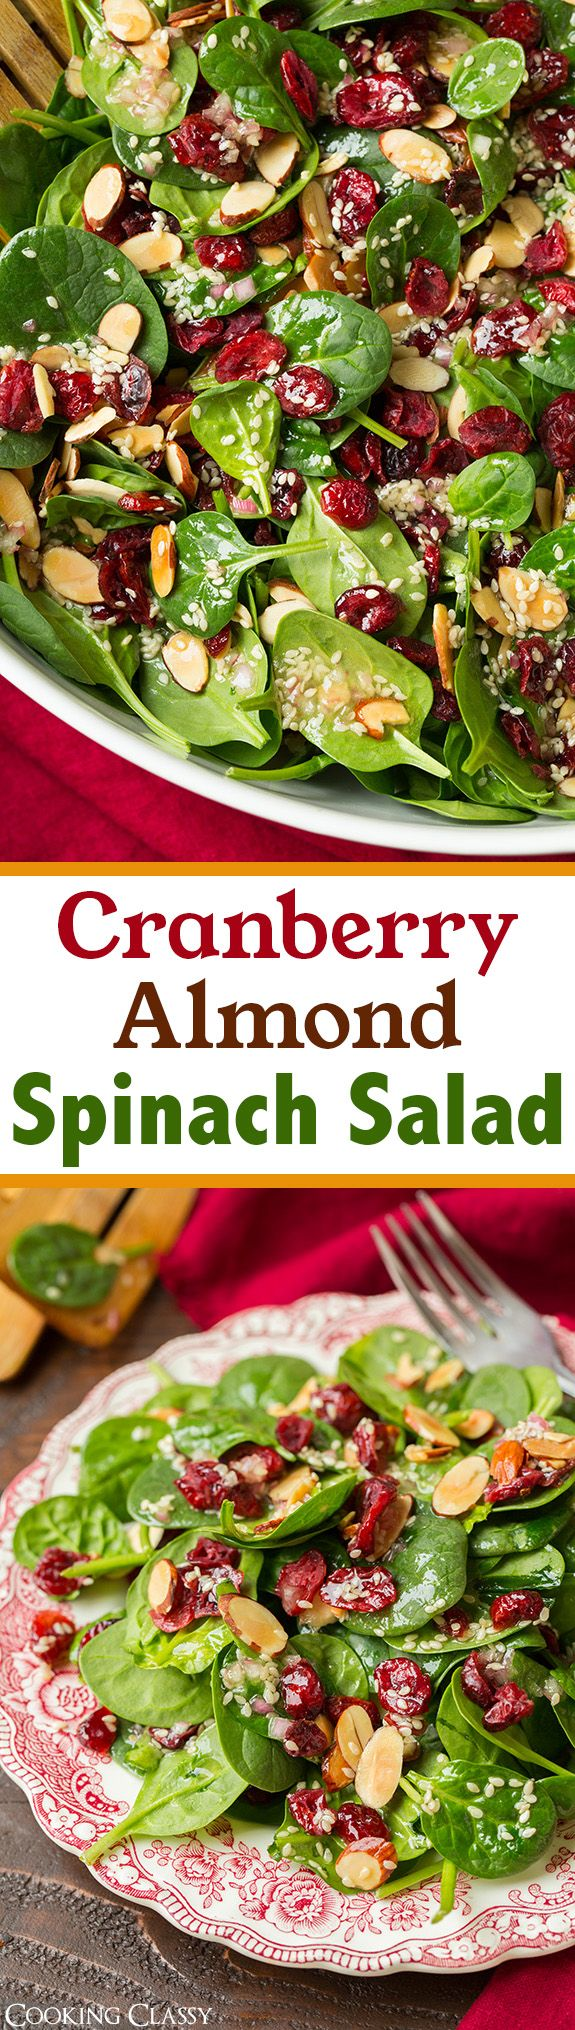 Cranberry Almond Spinach Salad // baby spinach, almonds, dried cranberries, olive oil, white sugar, agave nectar, shallot, white wine vinegar, apple cider vinegar, sesame seeds, poppy seeds